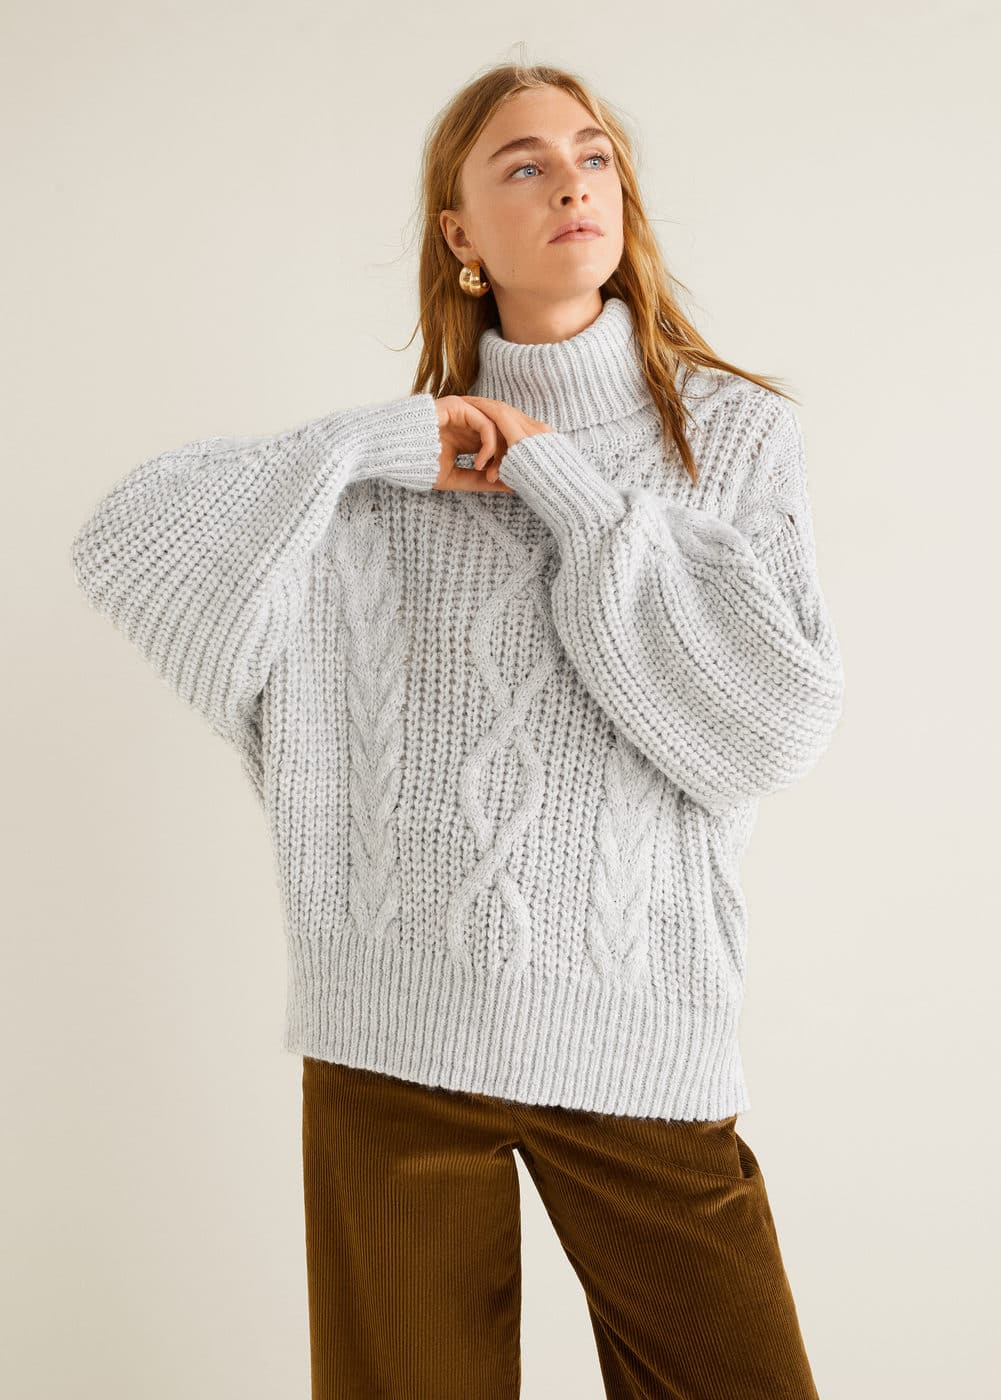 358ad3128cb6 Pull-over maille tressée - Femme   Mango France